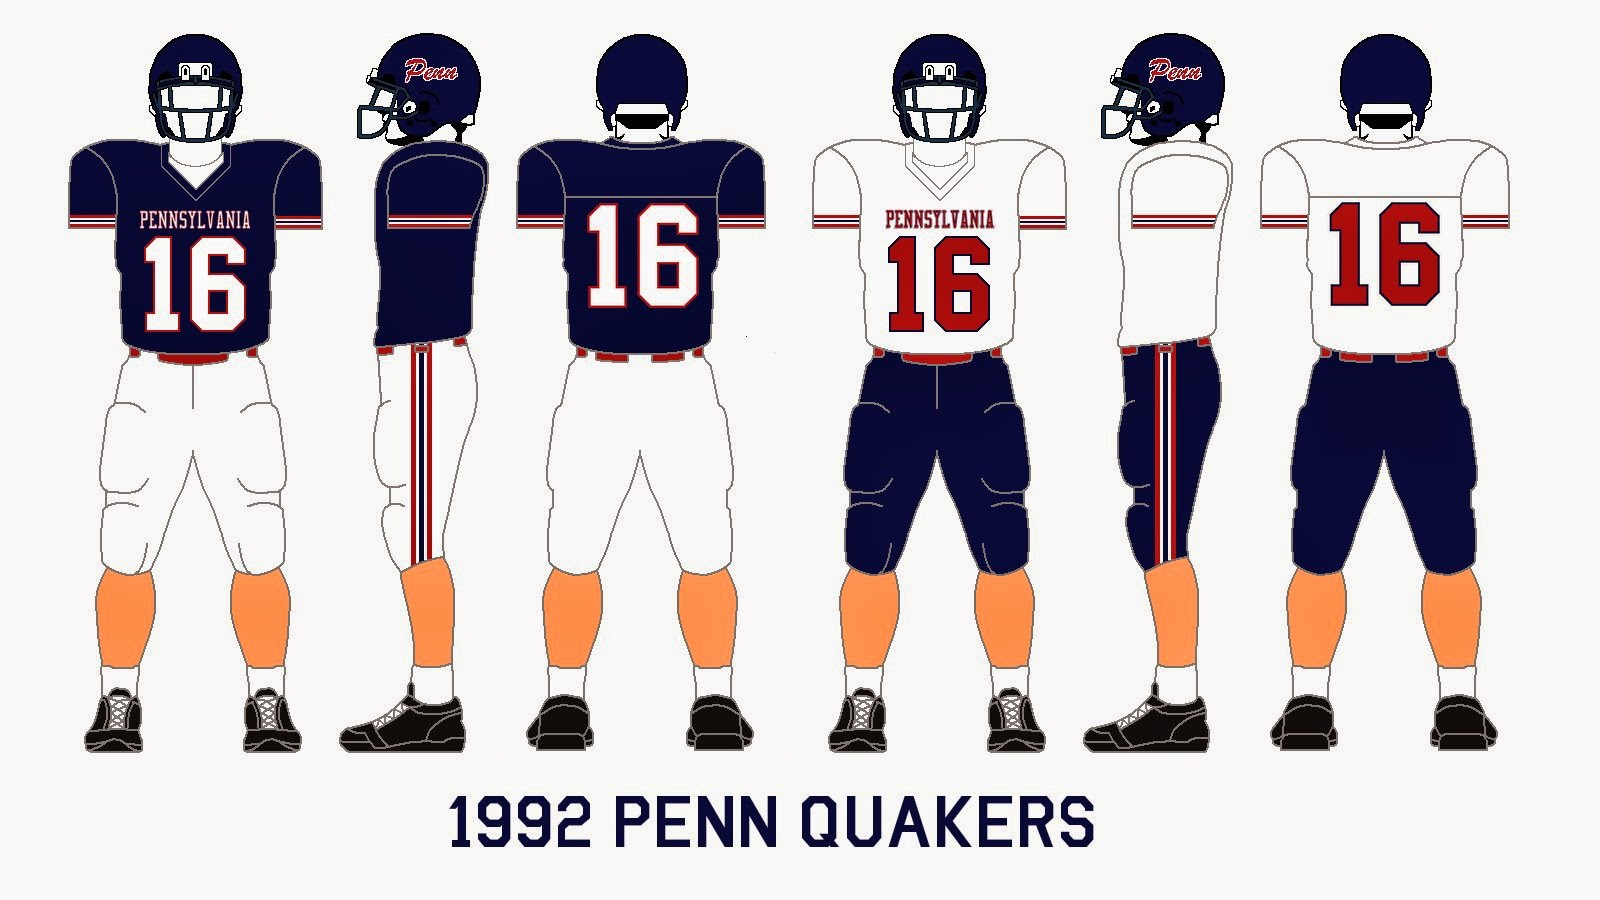 reputable site fe300 3d3ae Gridiron Garb: Penn Quakers (1992-94)